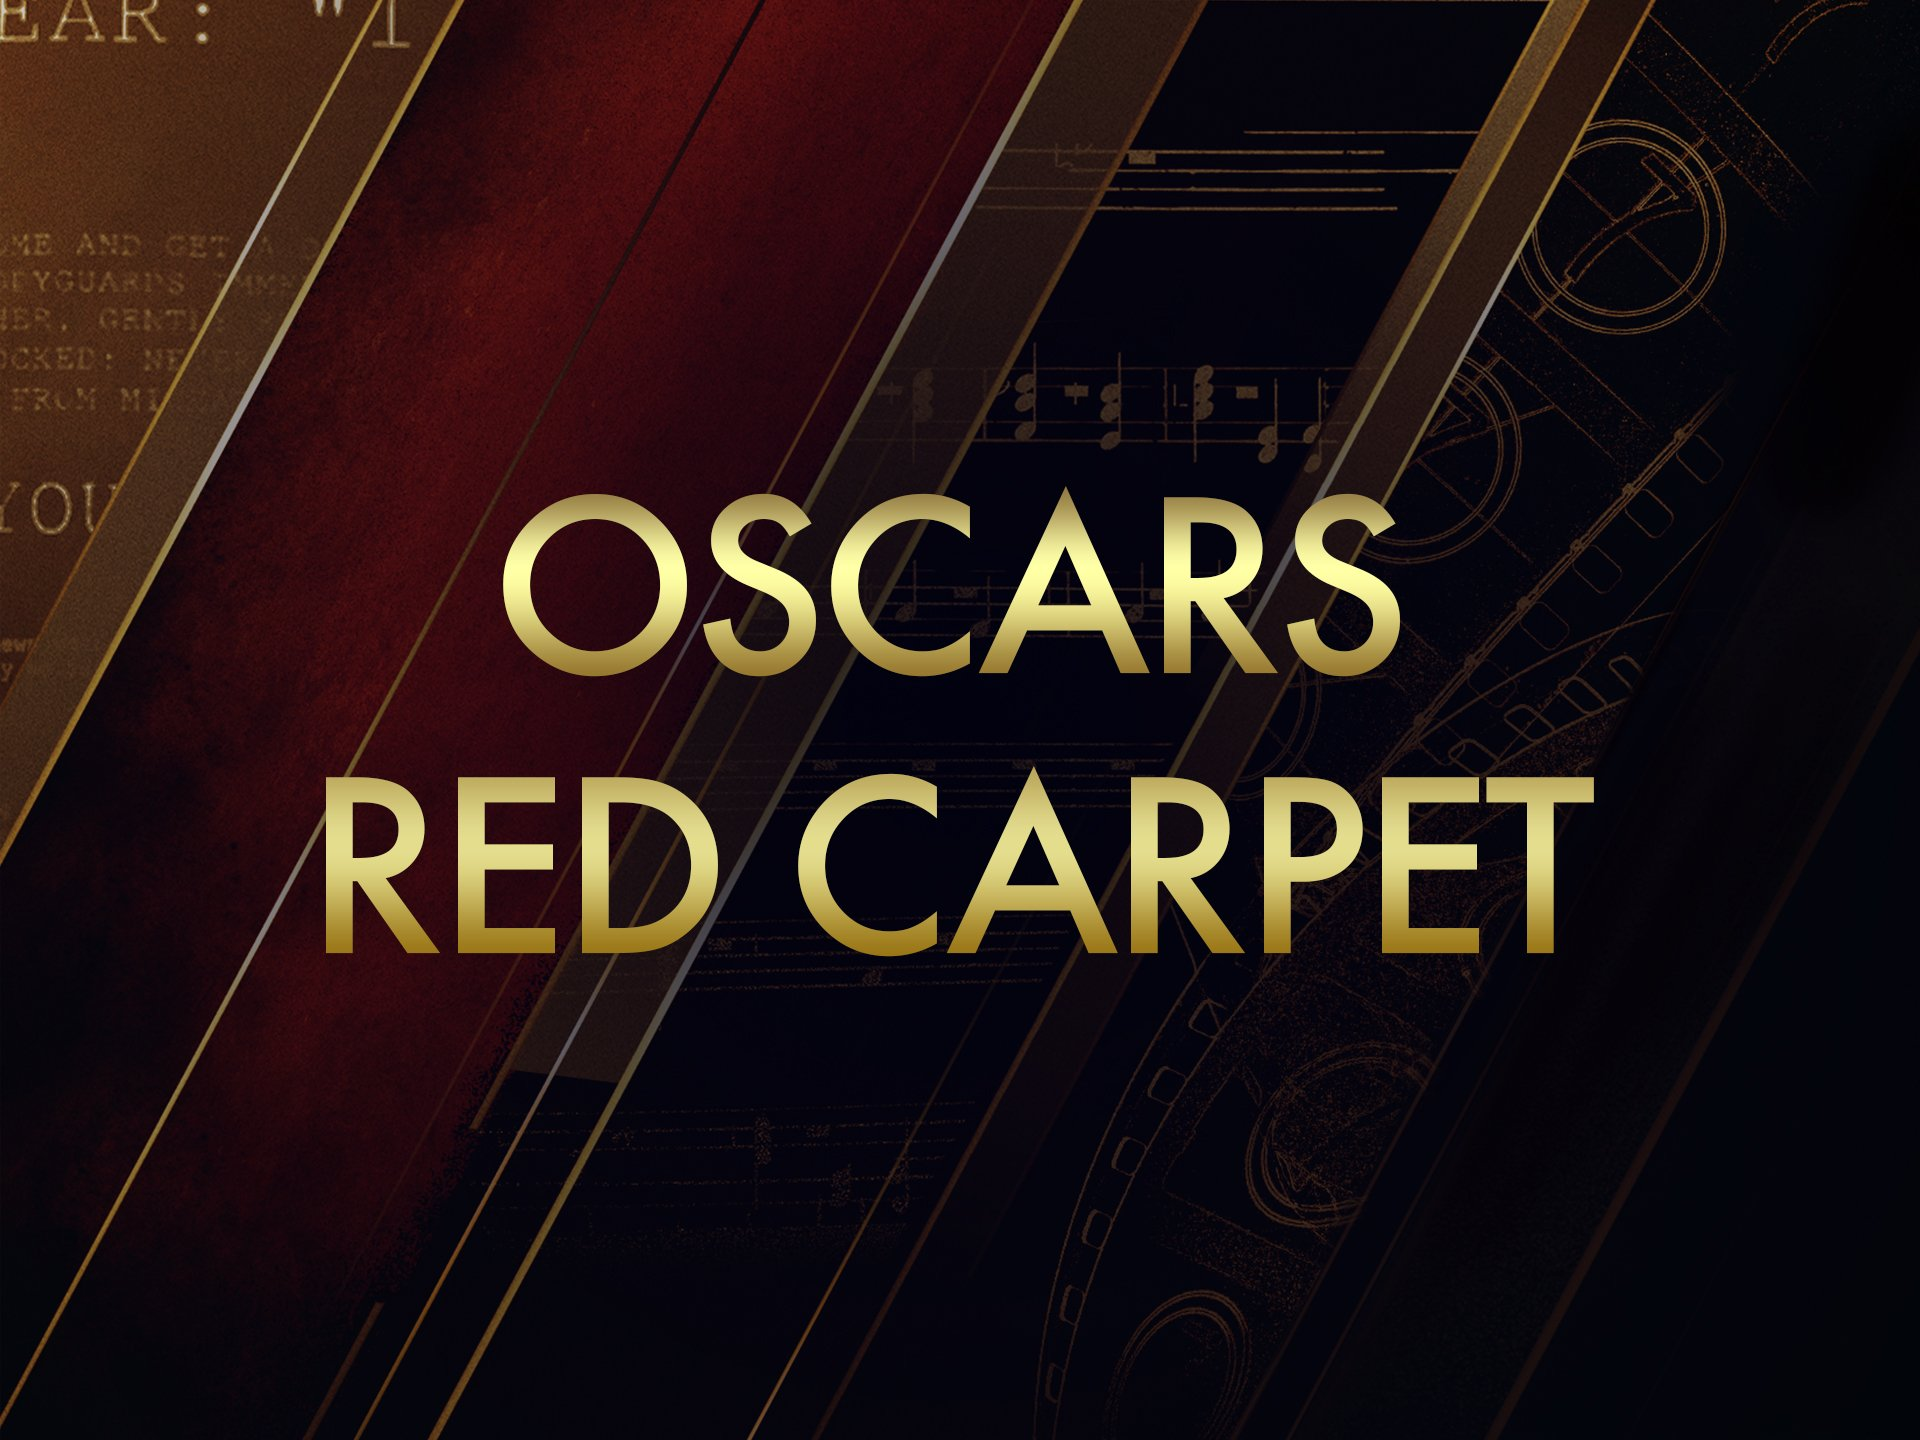 Oscars 2020 Red Carpet Live Updates Coverage   Oscars 2020 News 1920x1440